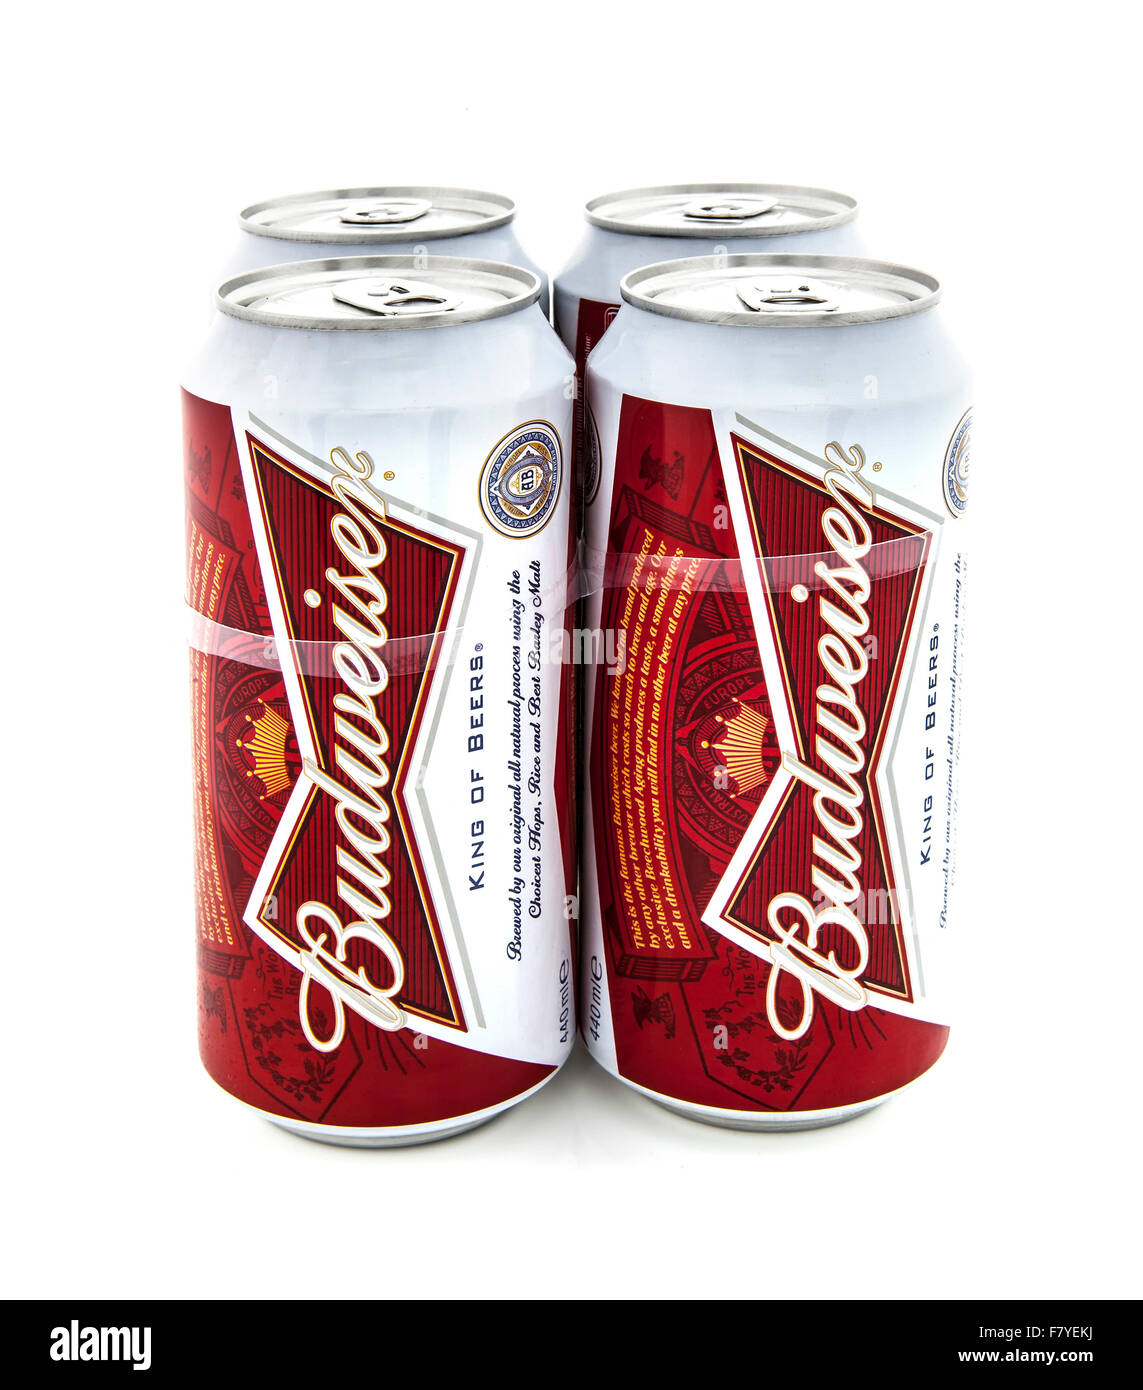 Four Pack of Budweiser Beers on a White Background - Stock Image